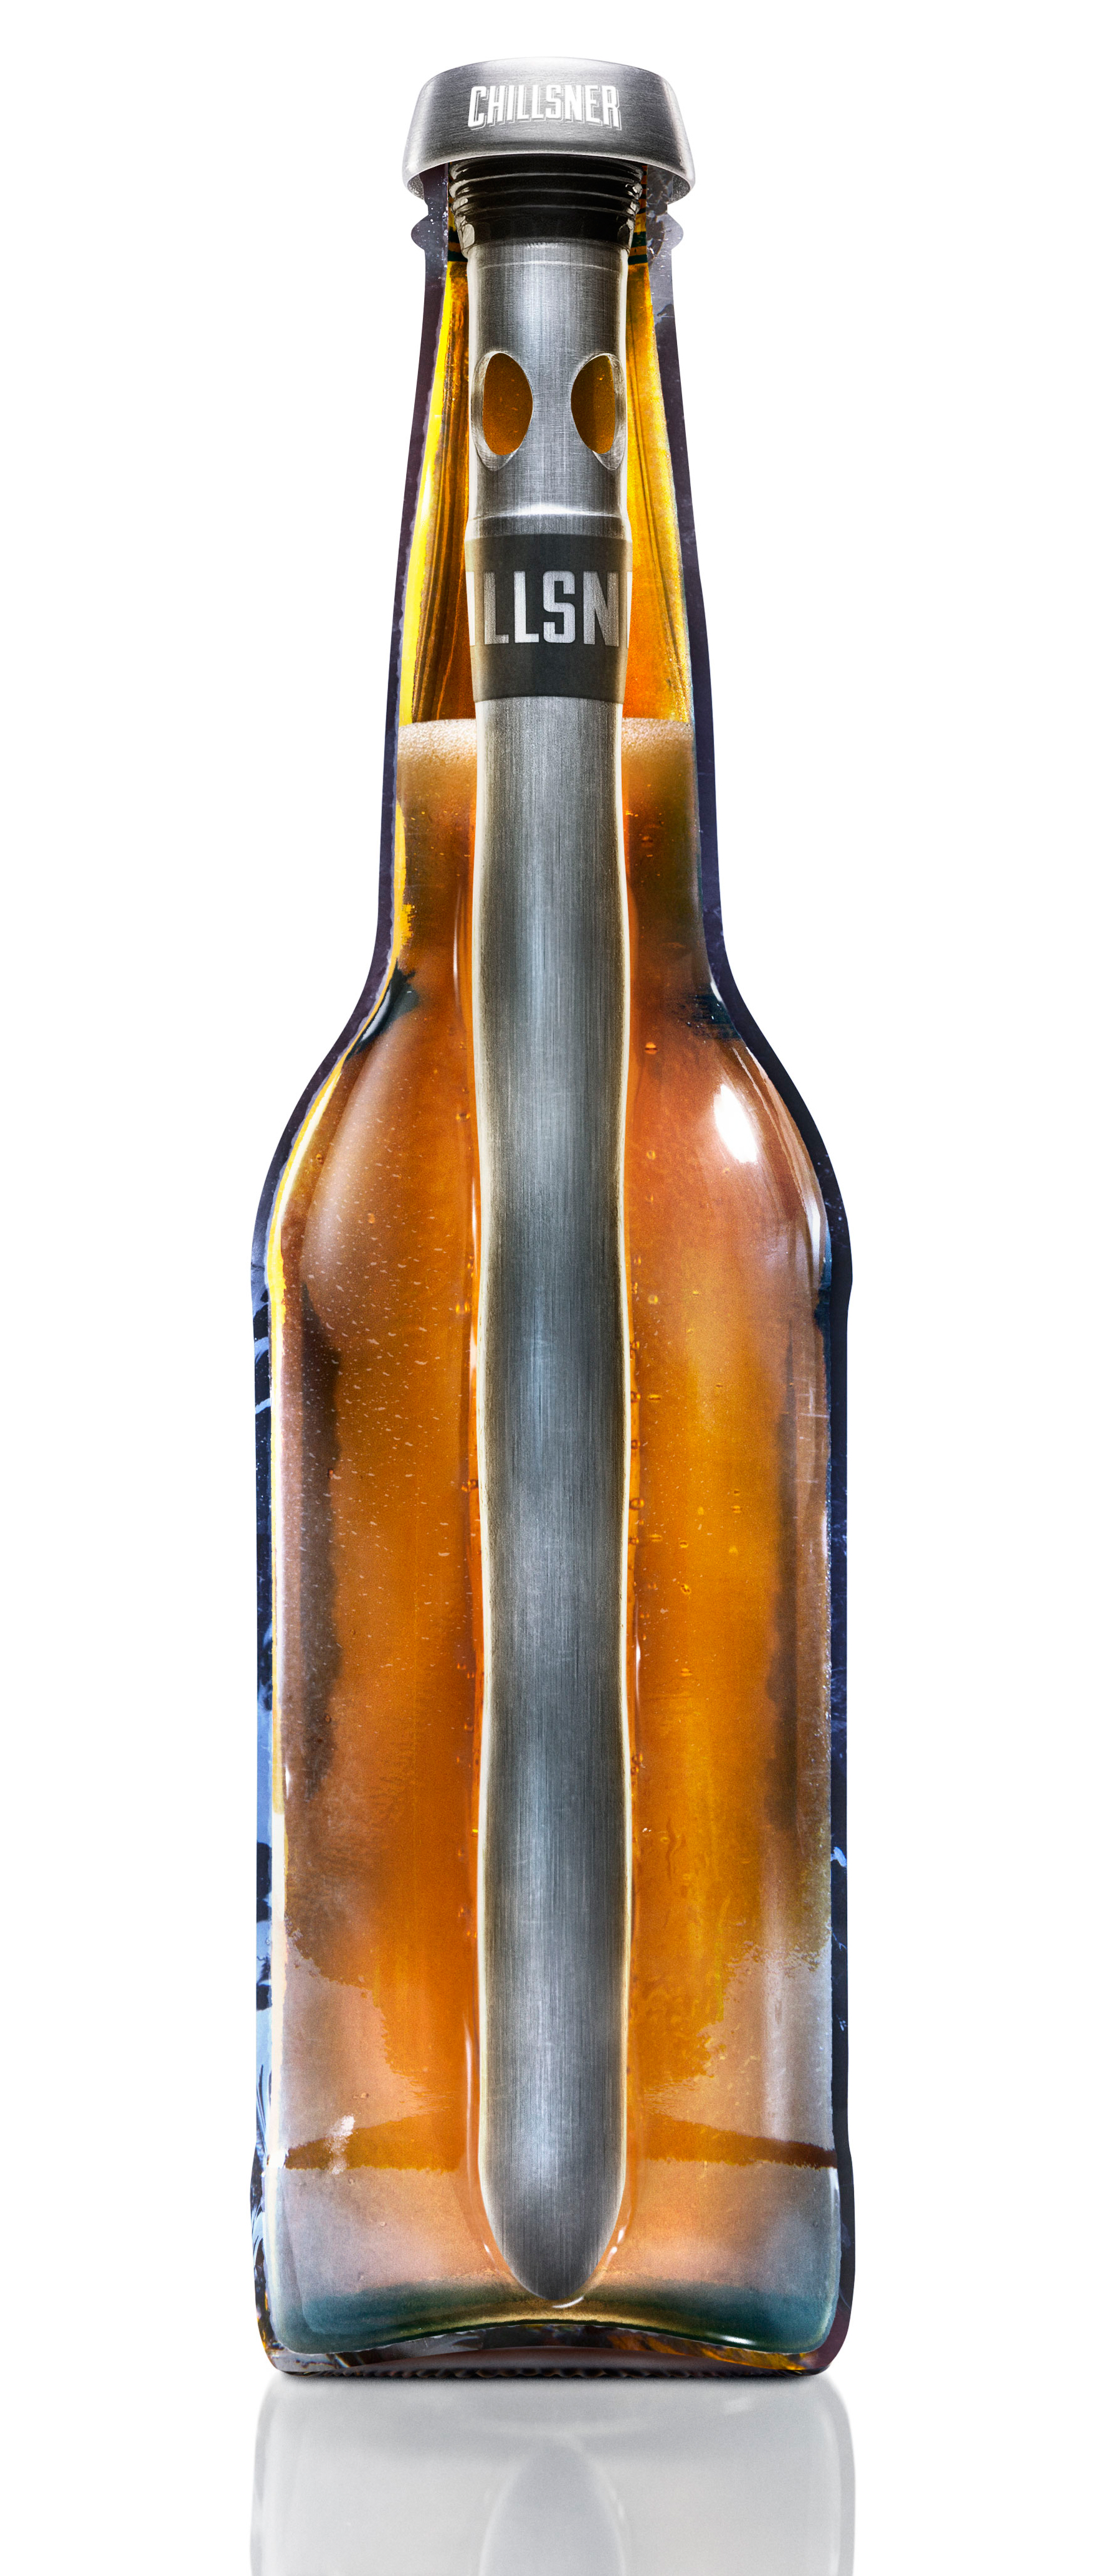 Keep the Chillsner in the freezer -- not the bottle of beer.